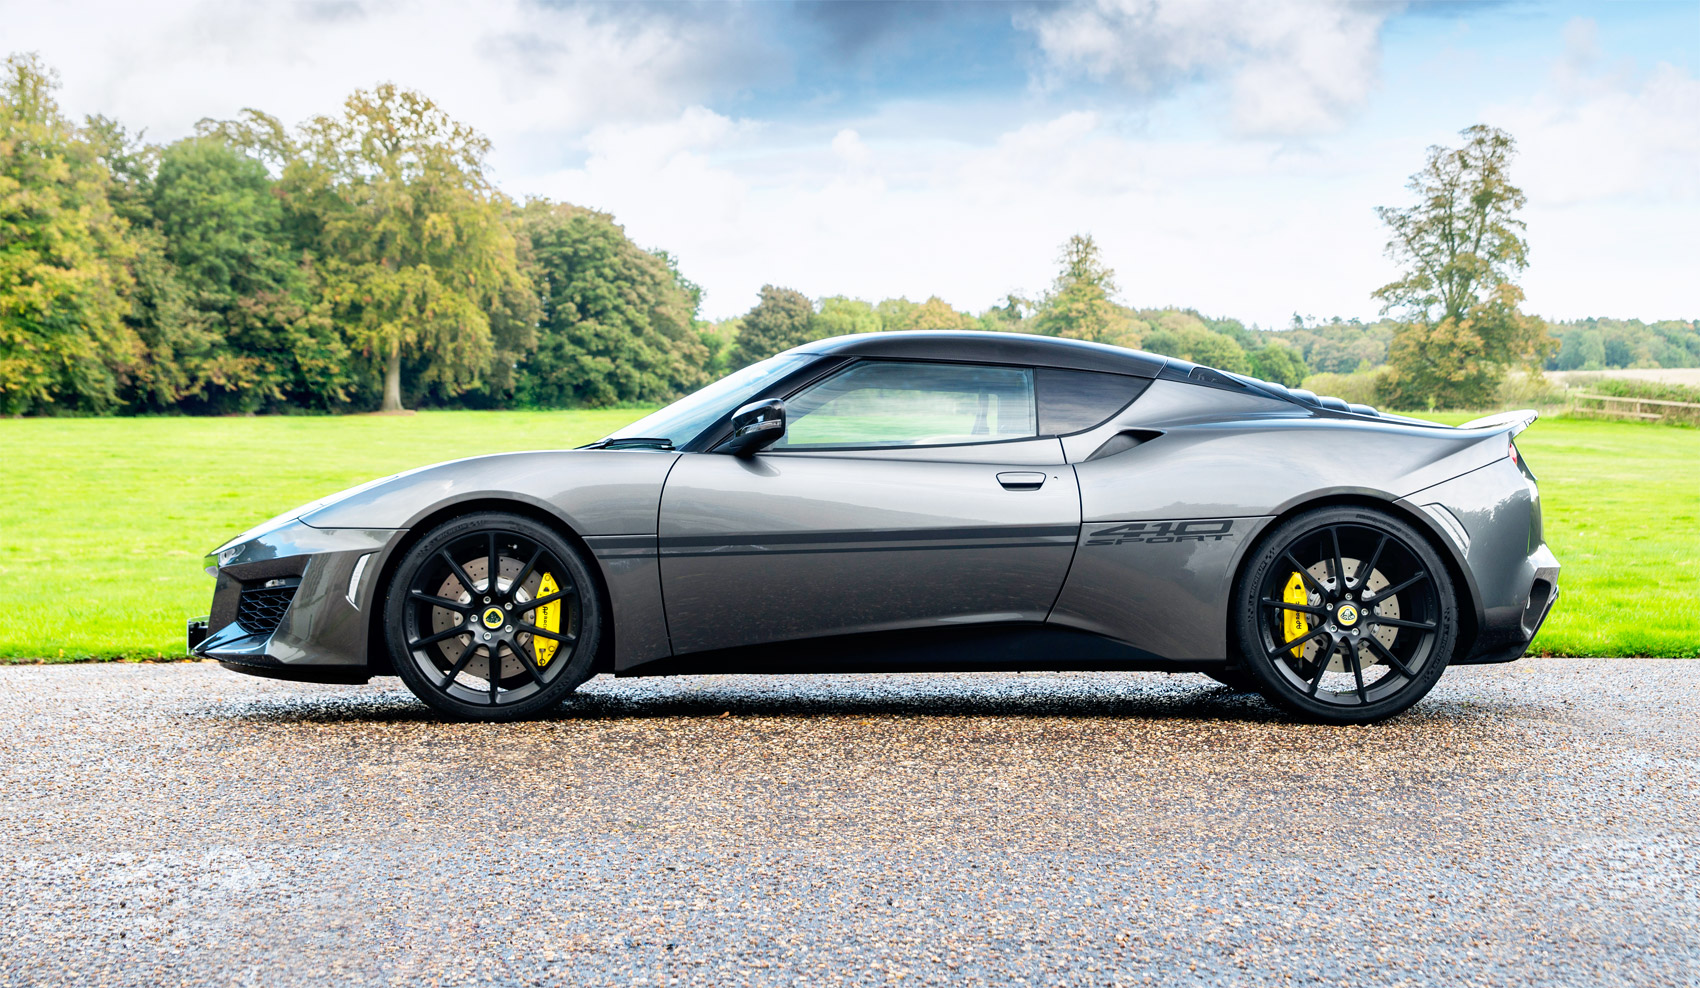 Limited Edition Lotus Evora Sport 410 – Sharp Lines, Sharper Performance